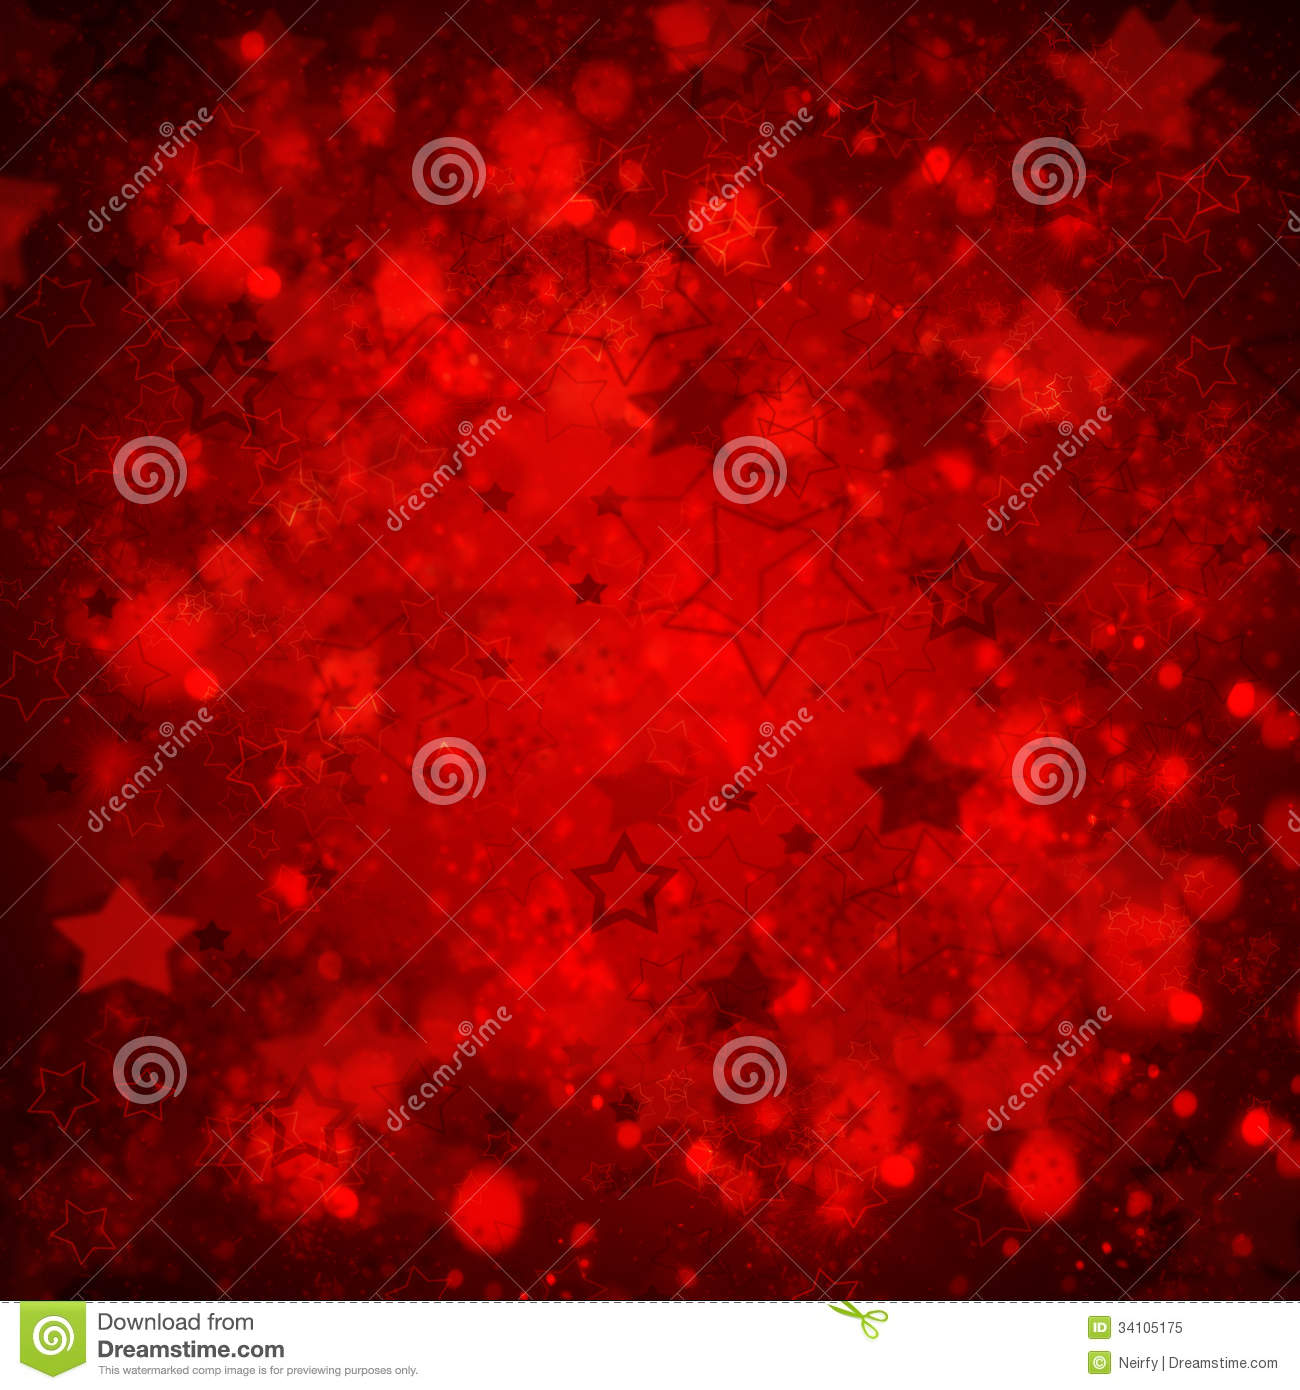 red star background - photo #32